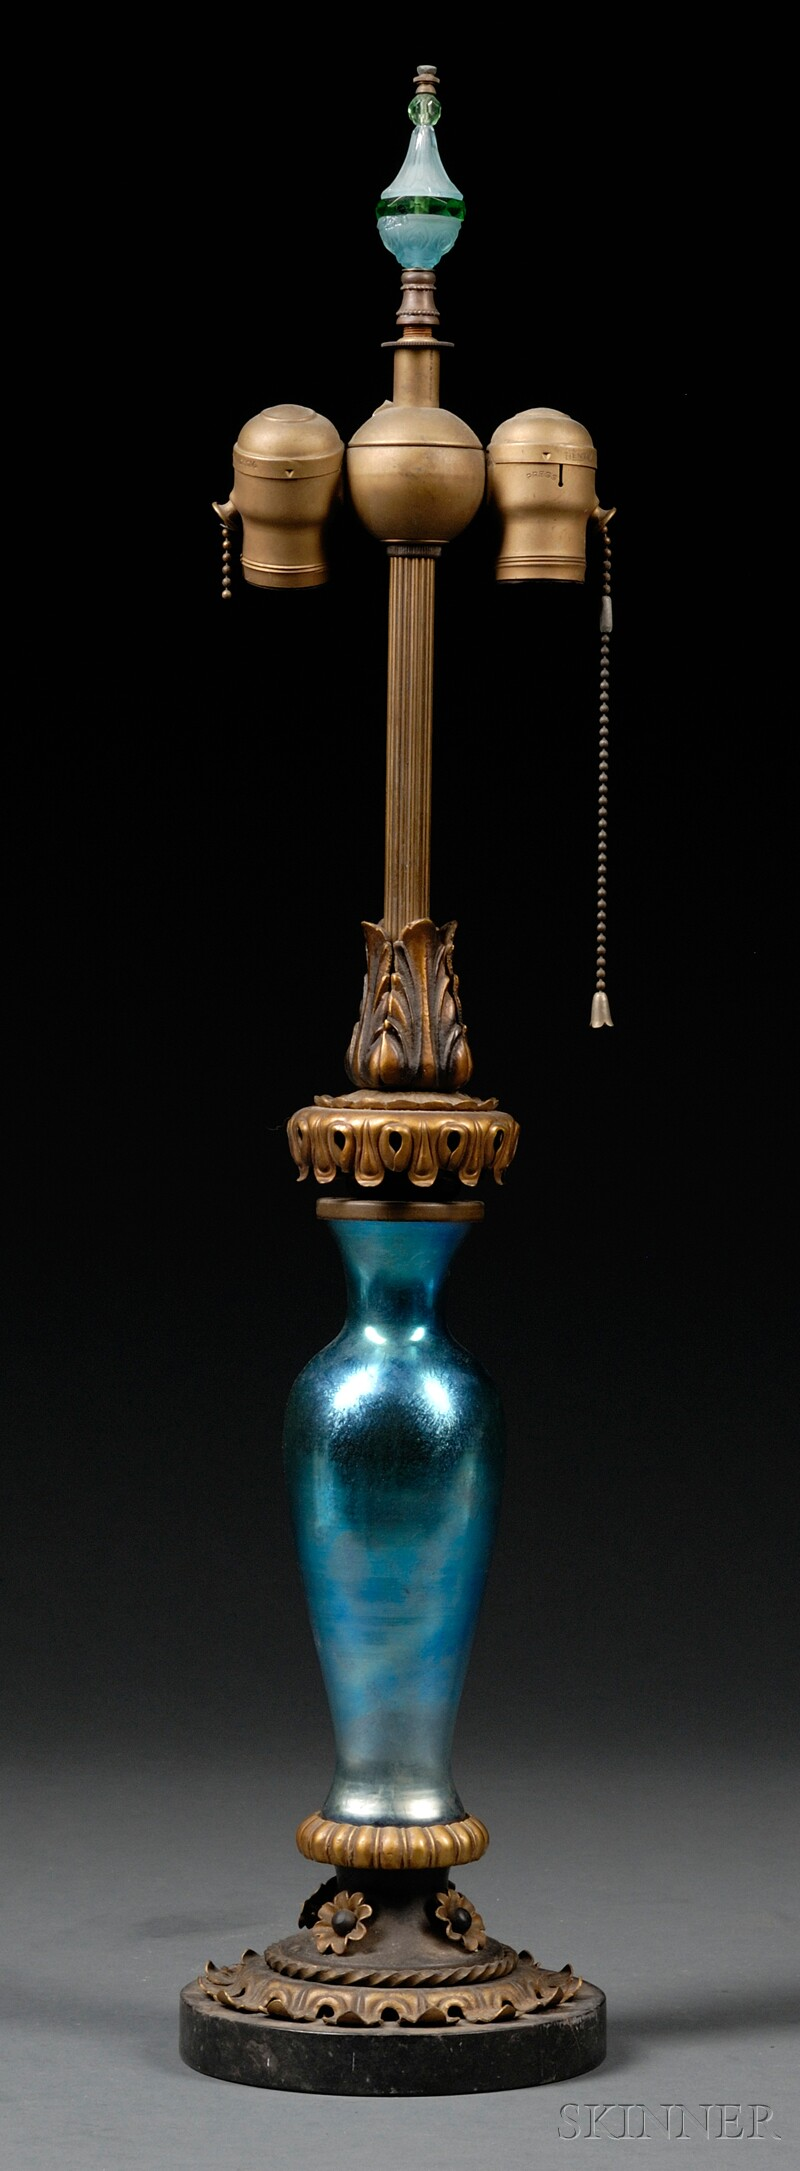 Table Lamp Attributed to Steuben